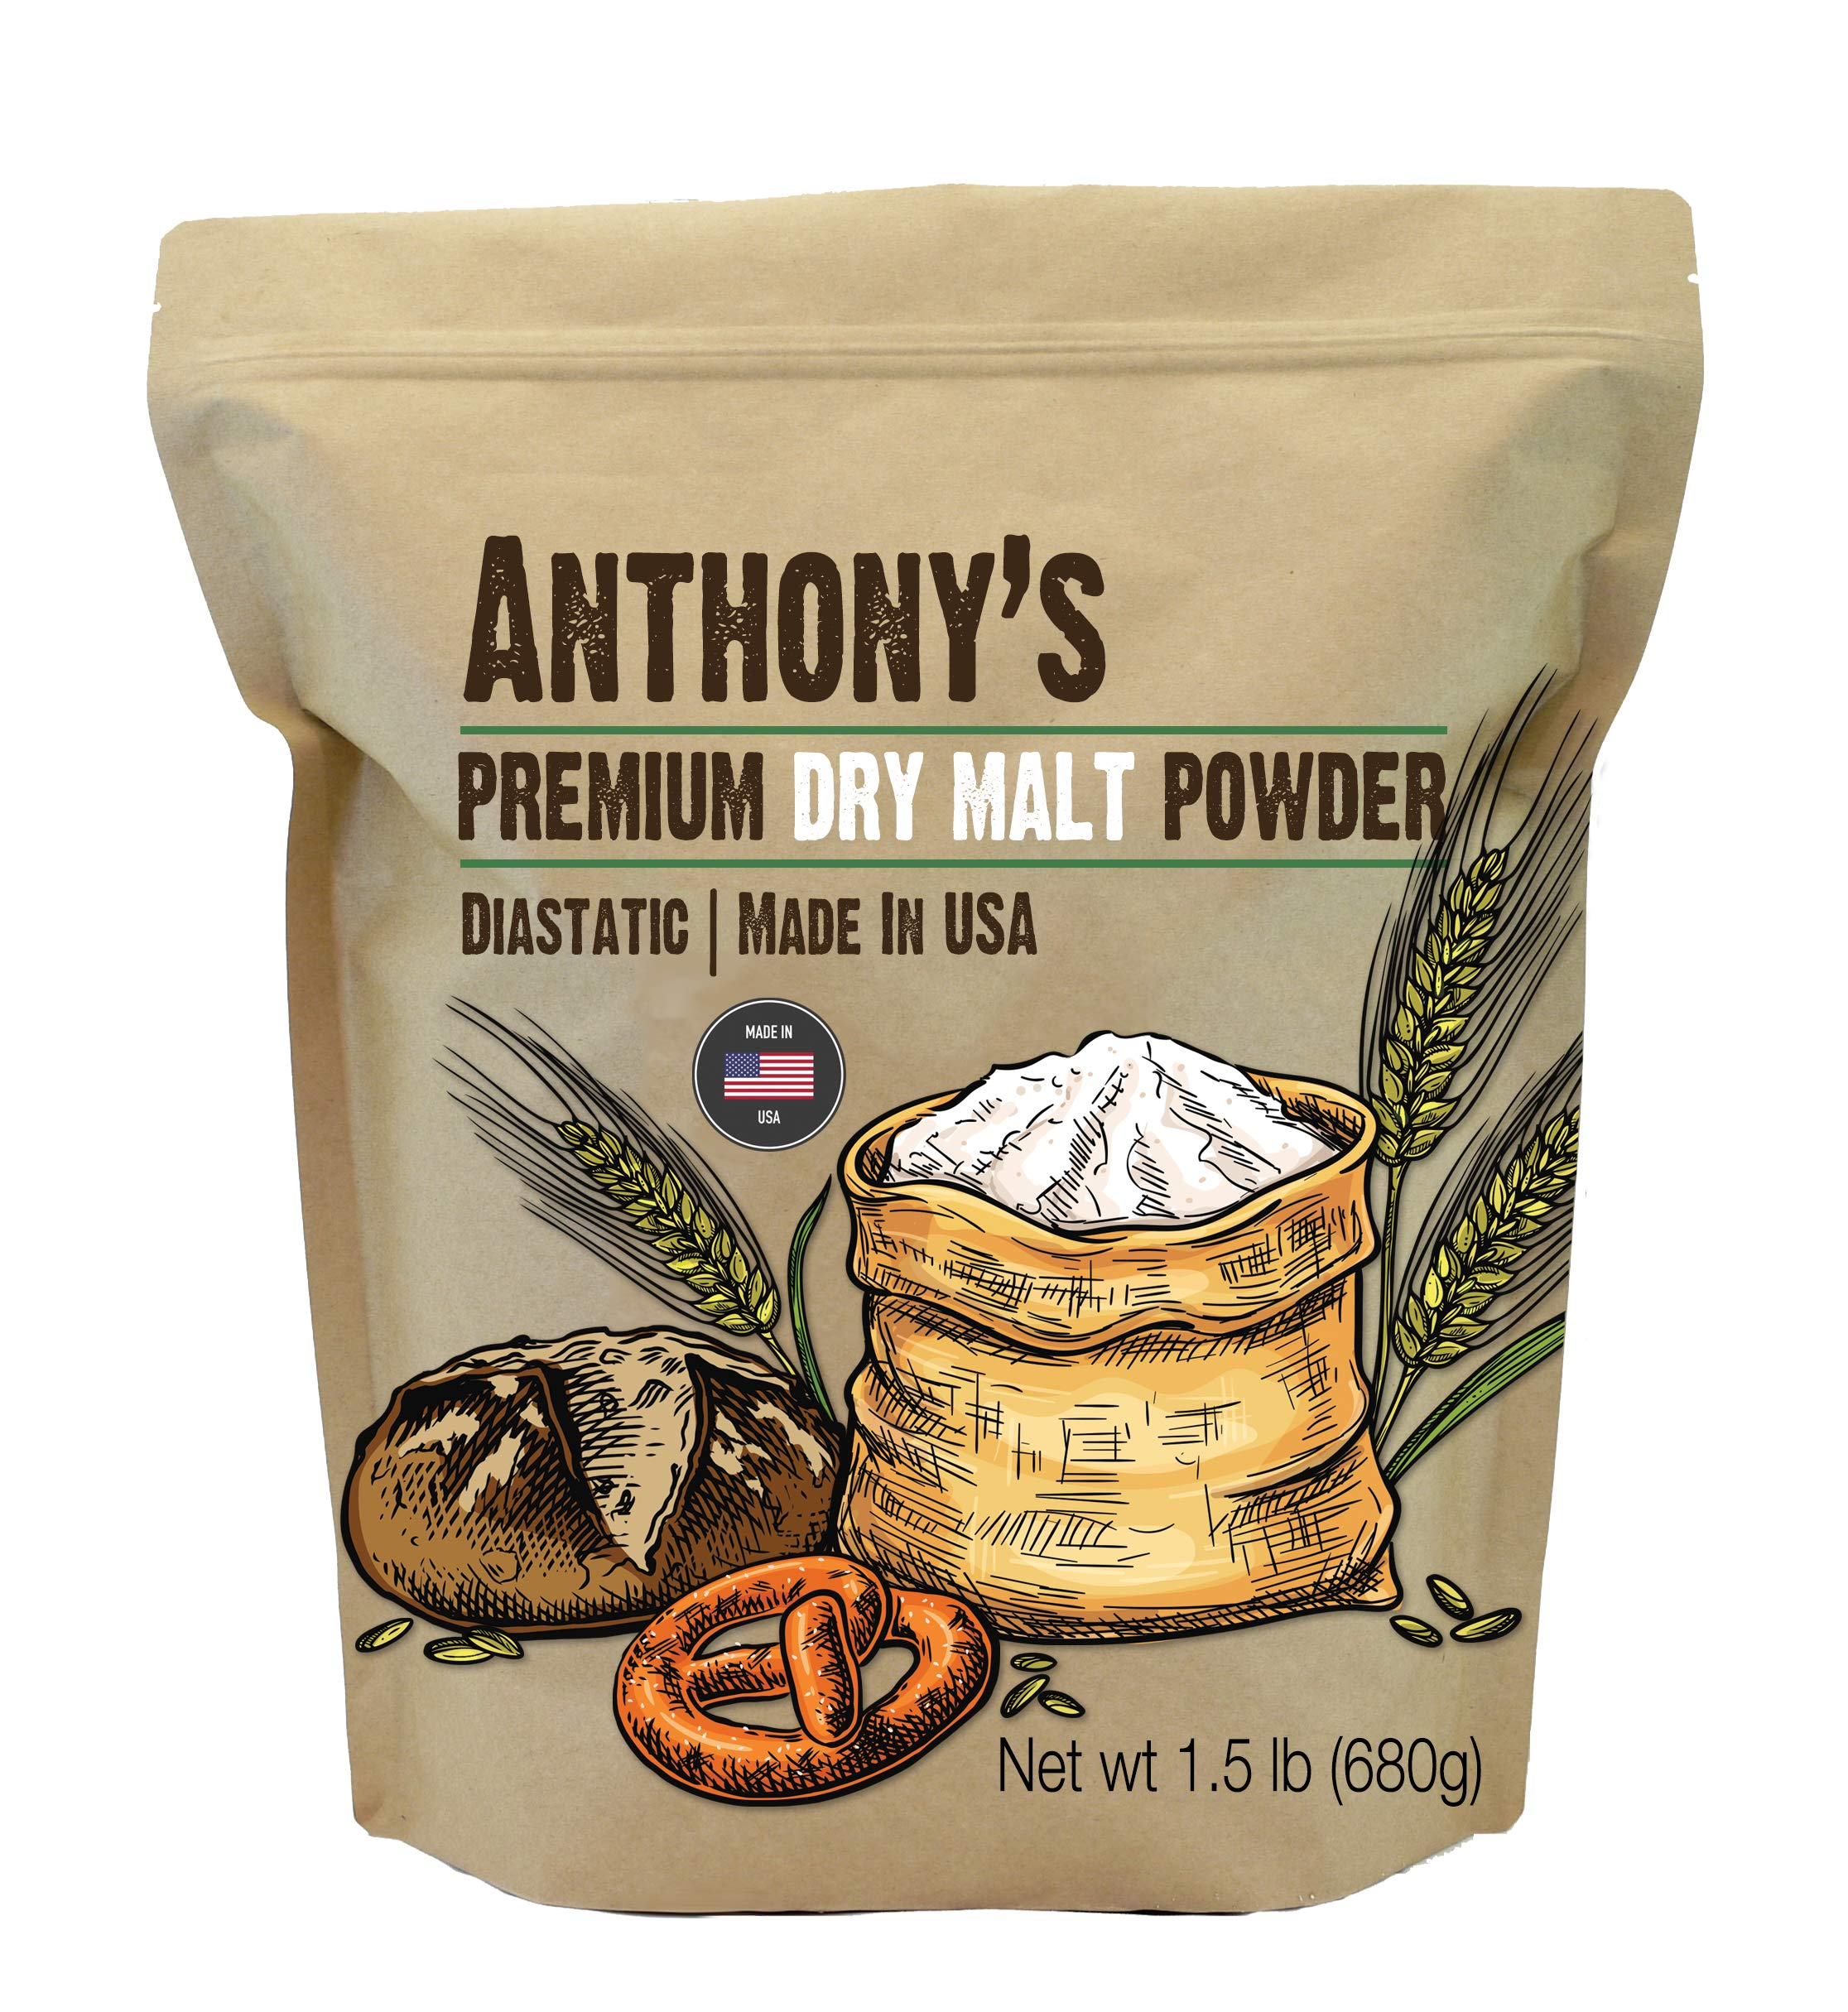 Anthony's Diastatic Dry Malt Powder, 1.5 lb, Made in the USA, Diastatic, Malted Barley Flour